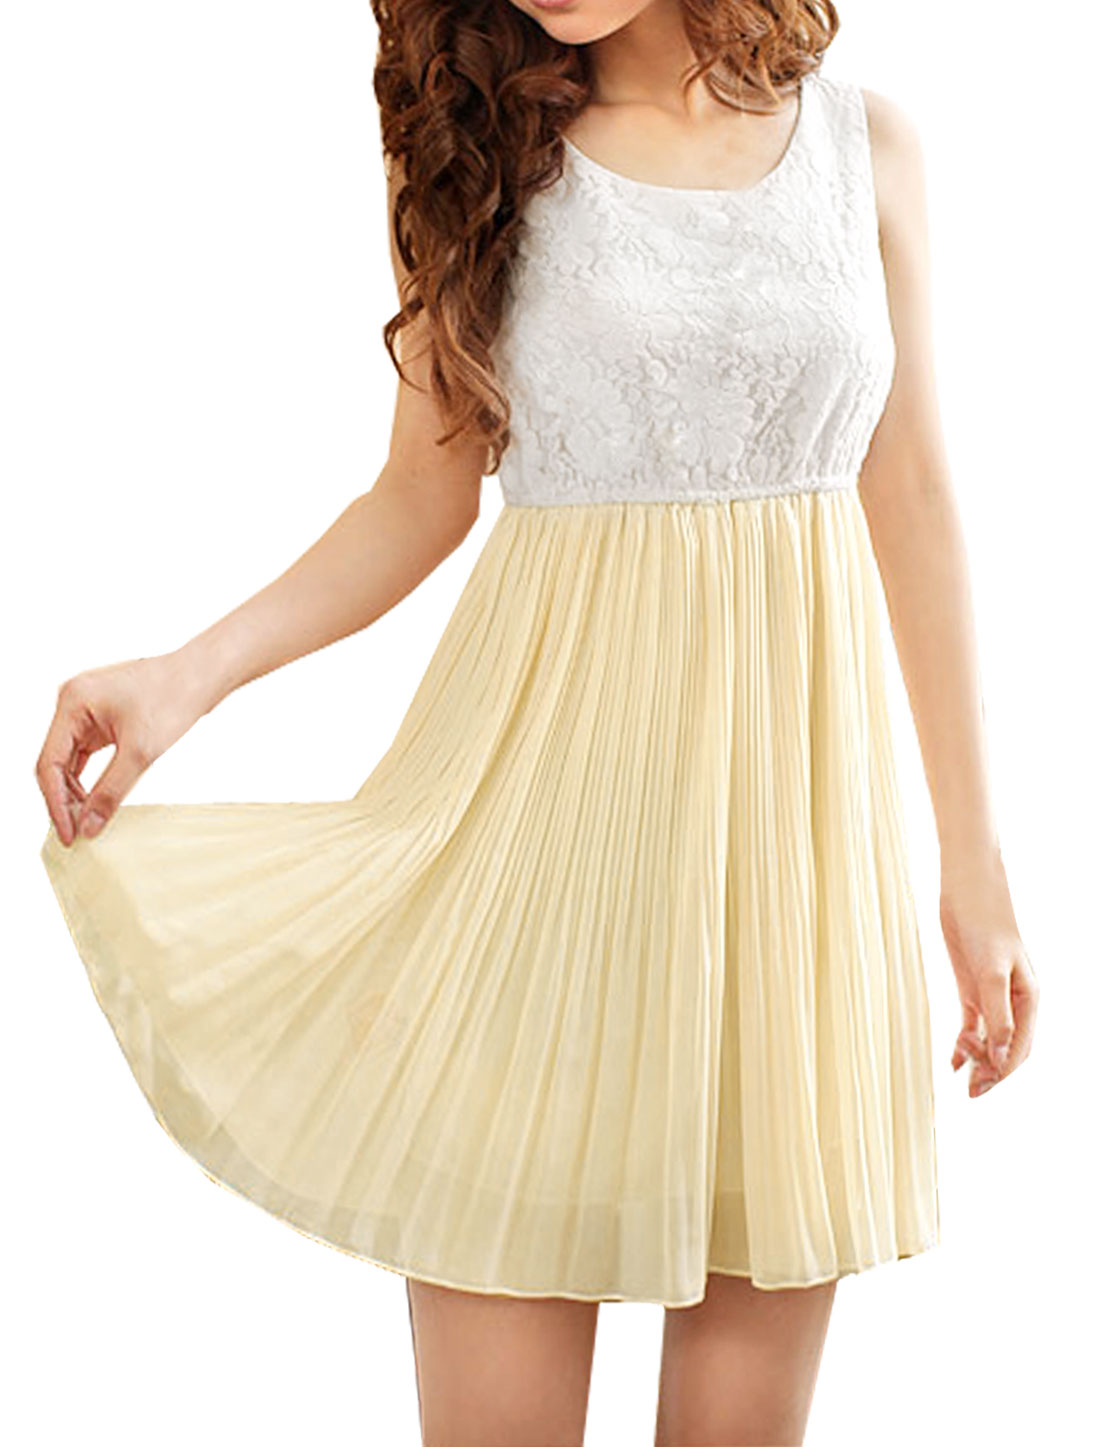 Ladies Chic Beige White Two-Tone Splice Pleated A-Line Dress S